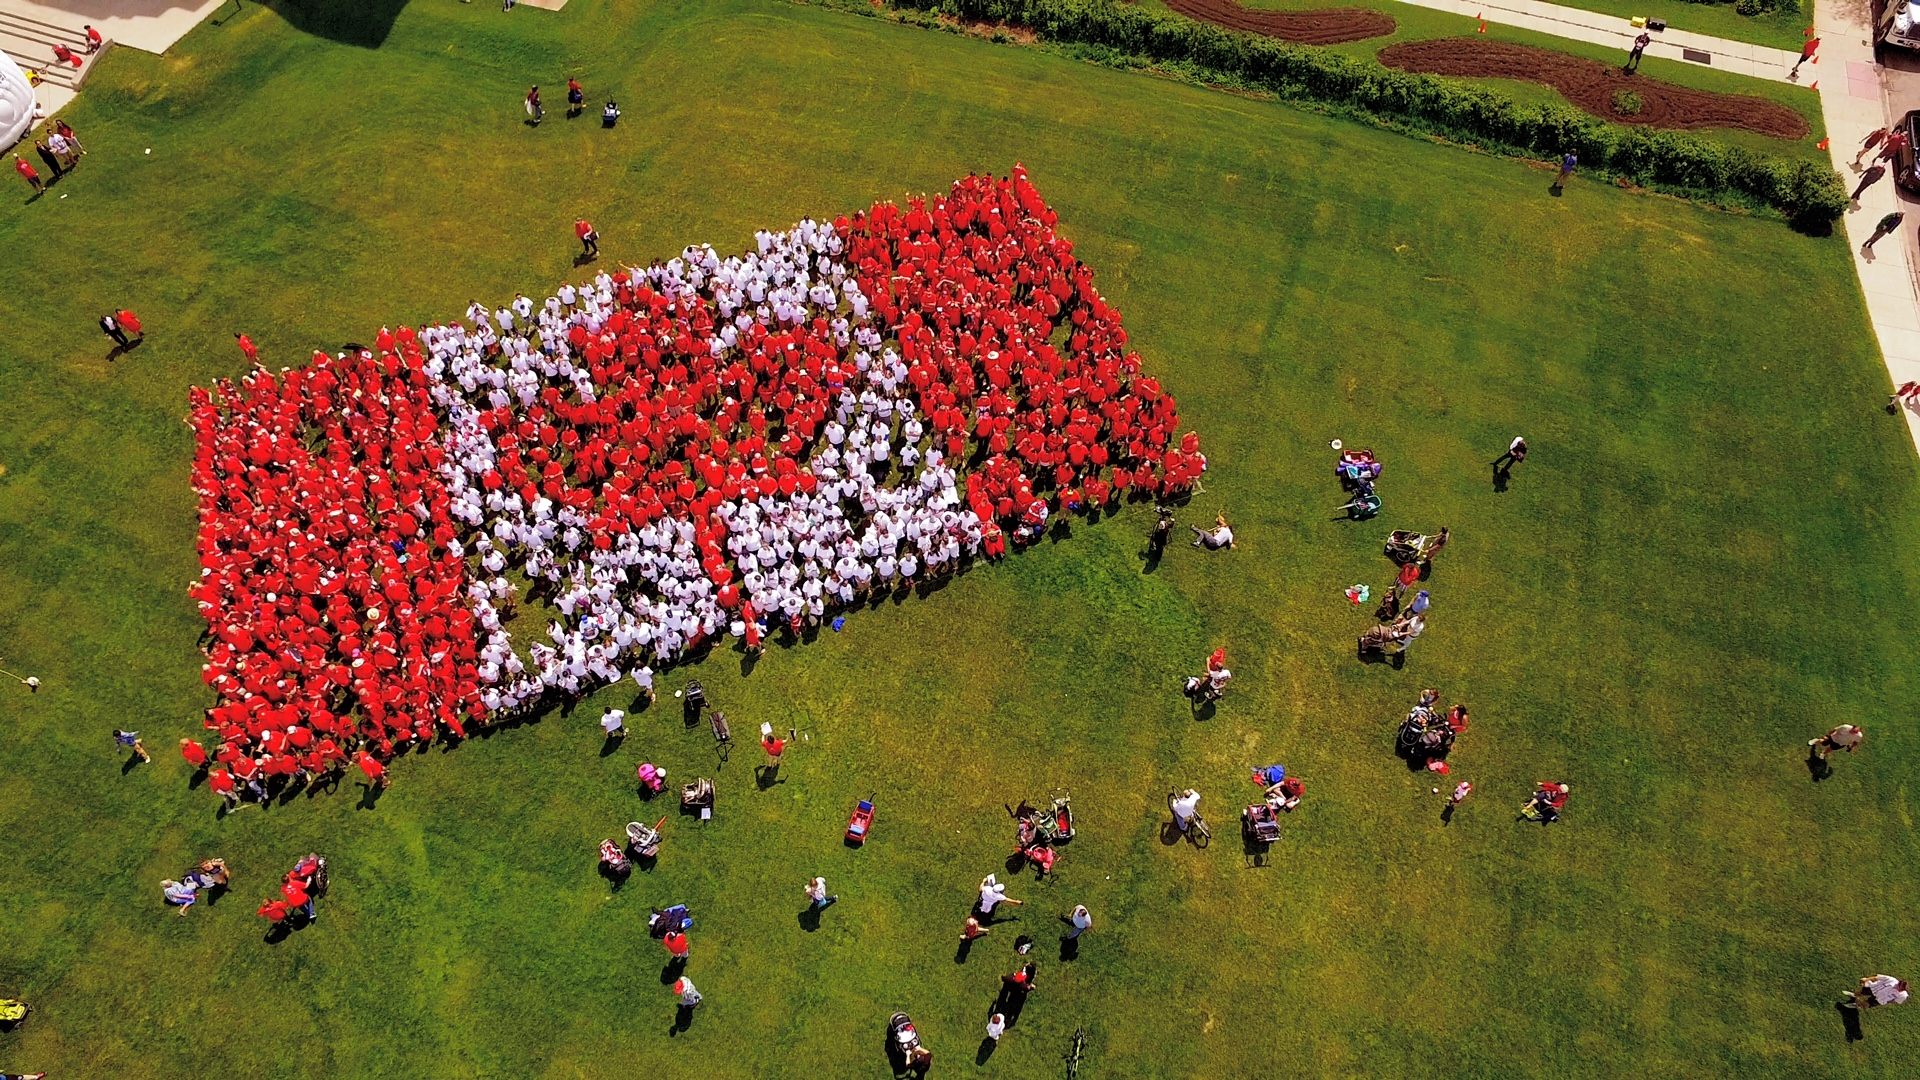 Provincial government excited for Regina's Canada Day festivities